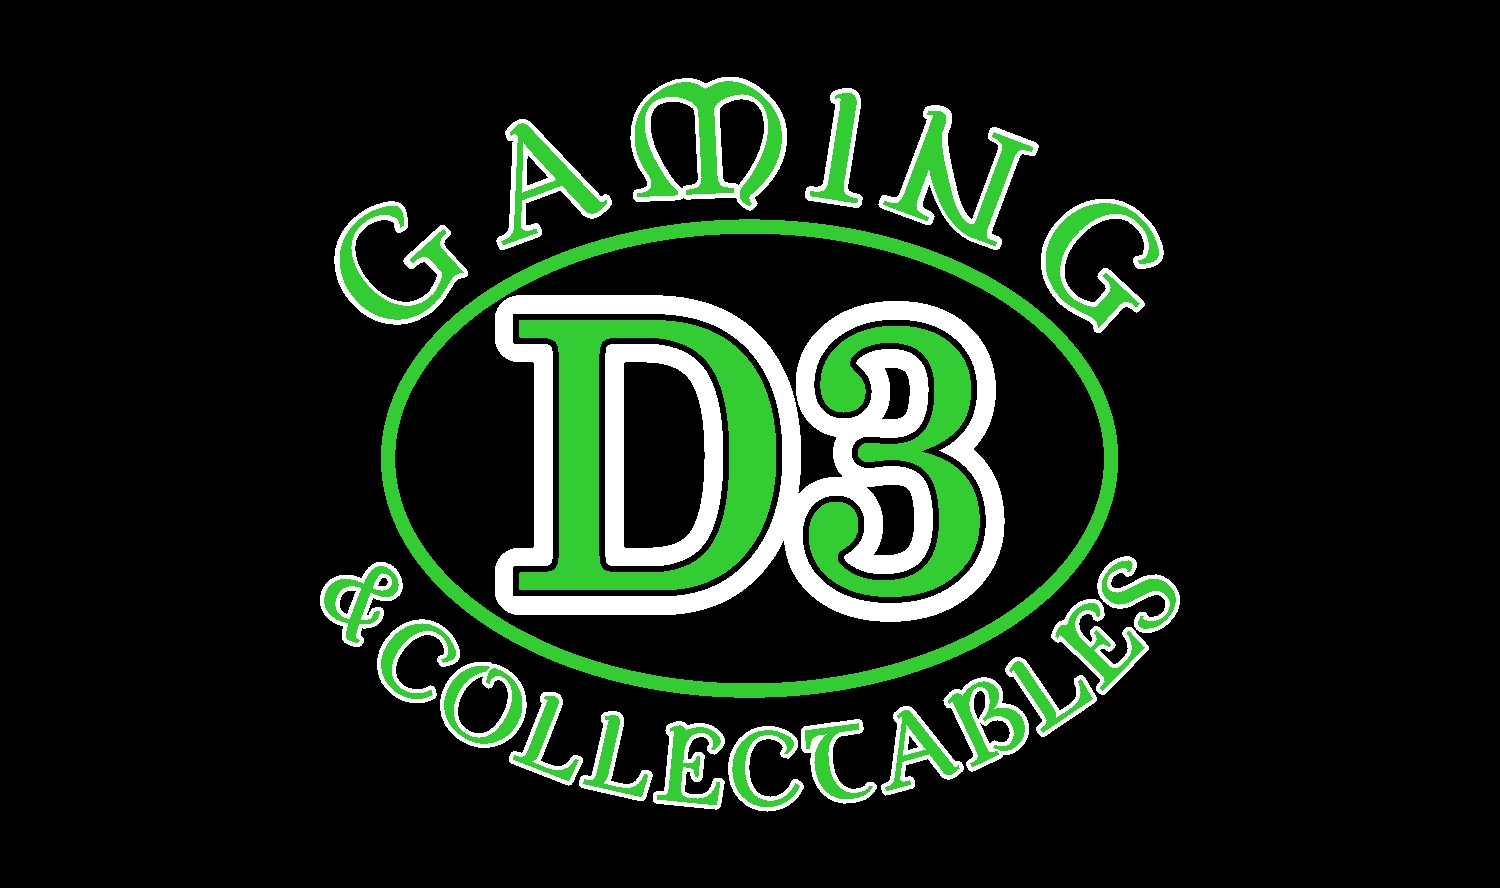 D3 Gaming and Collectables